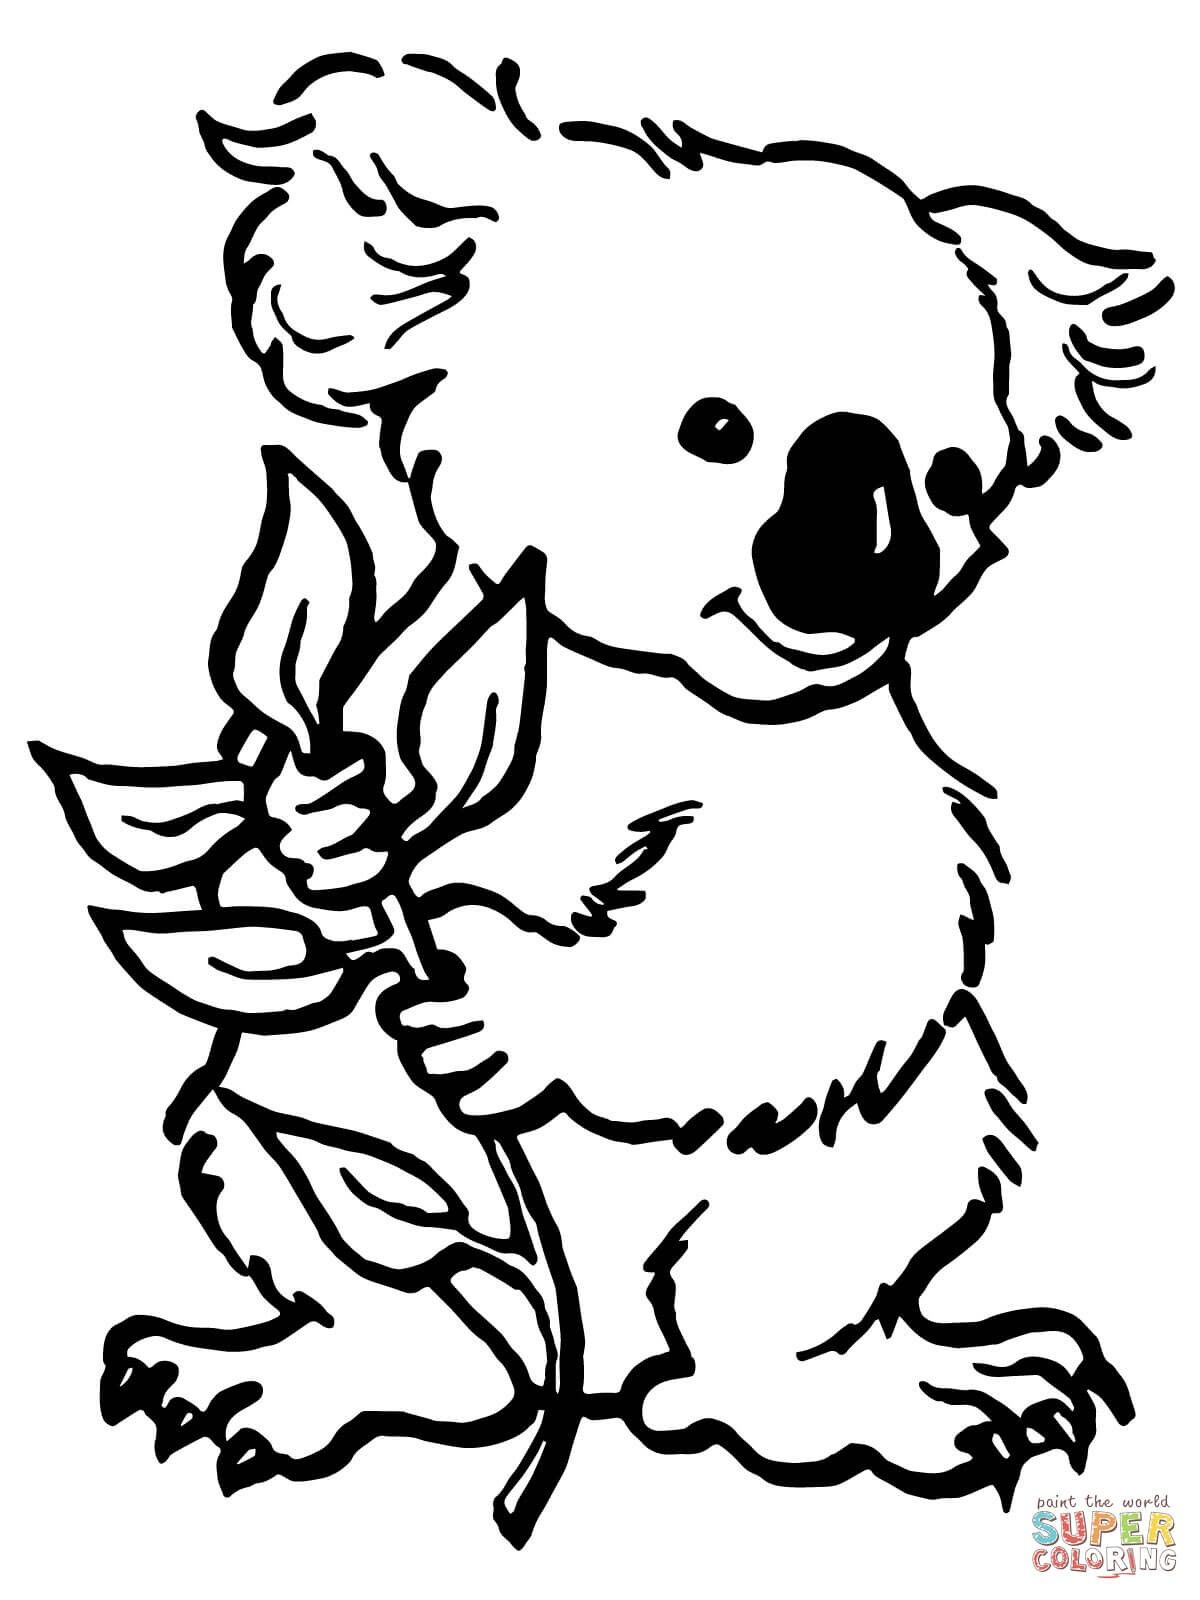 Pin By Diane Collier On Colouring In Bear Coloring Pages Animal Coloring Pages Animal Coloring Books